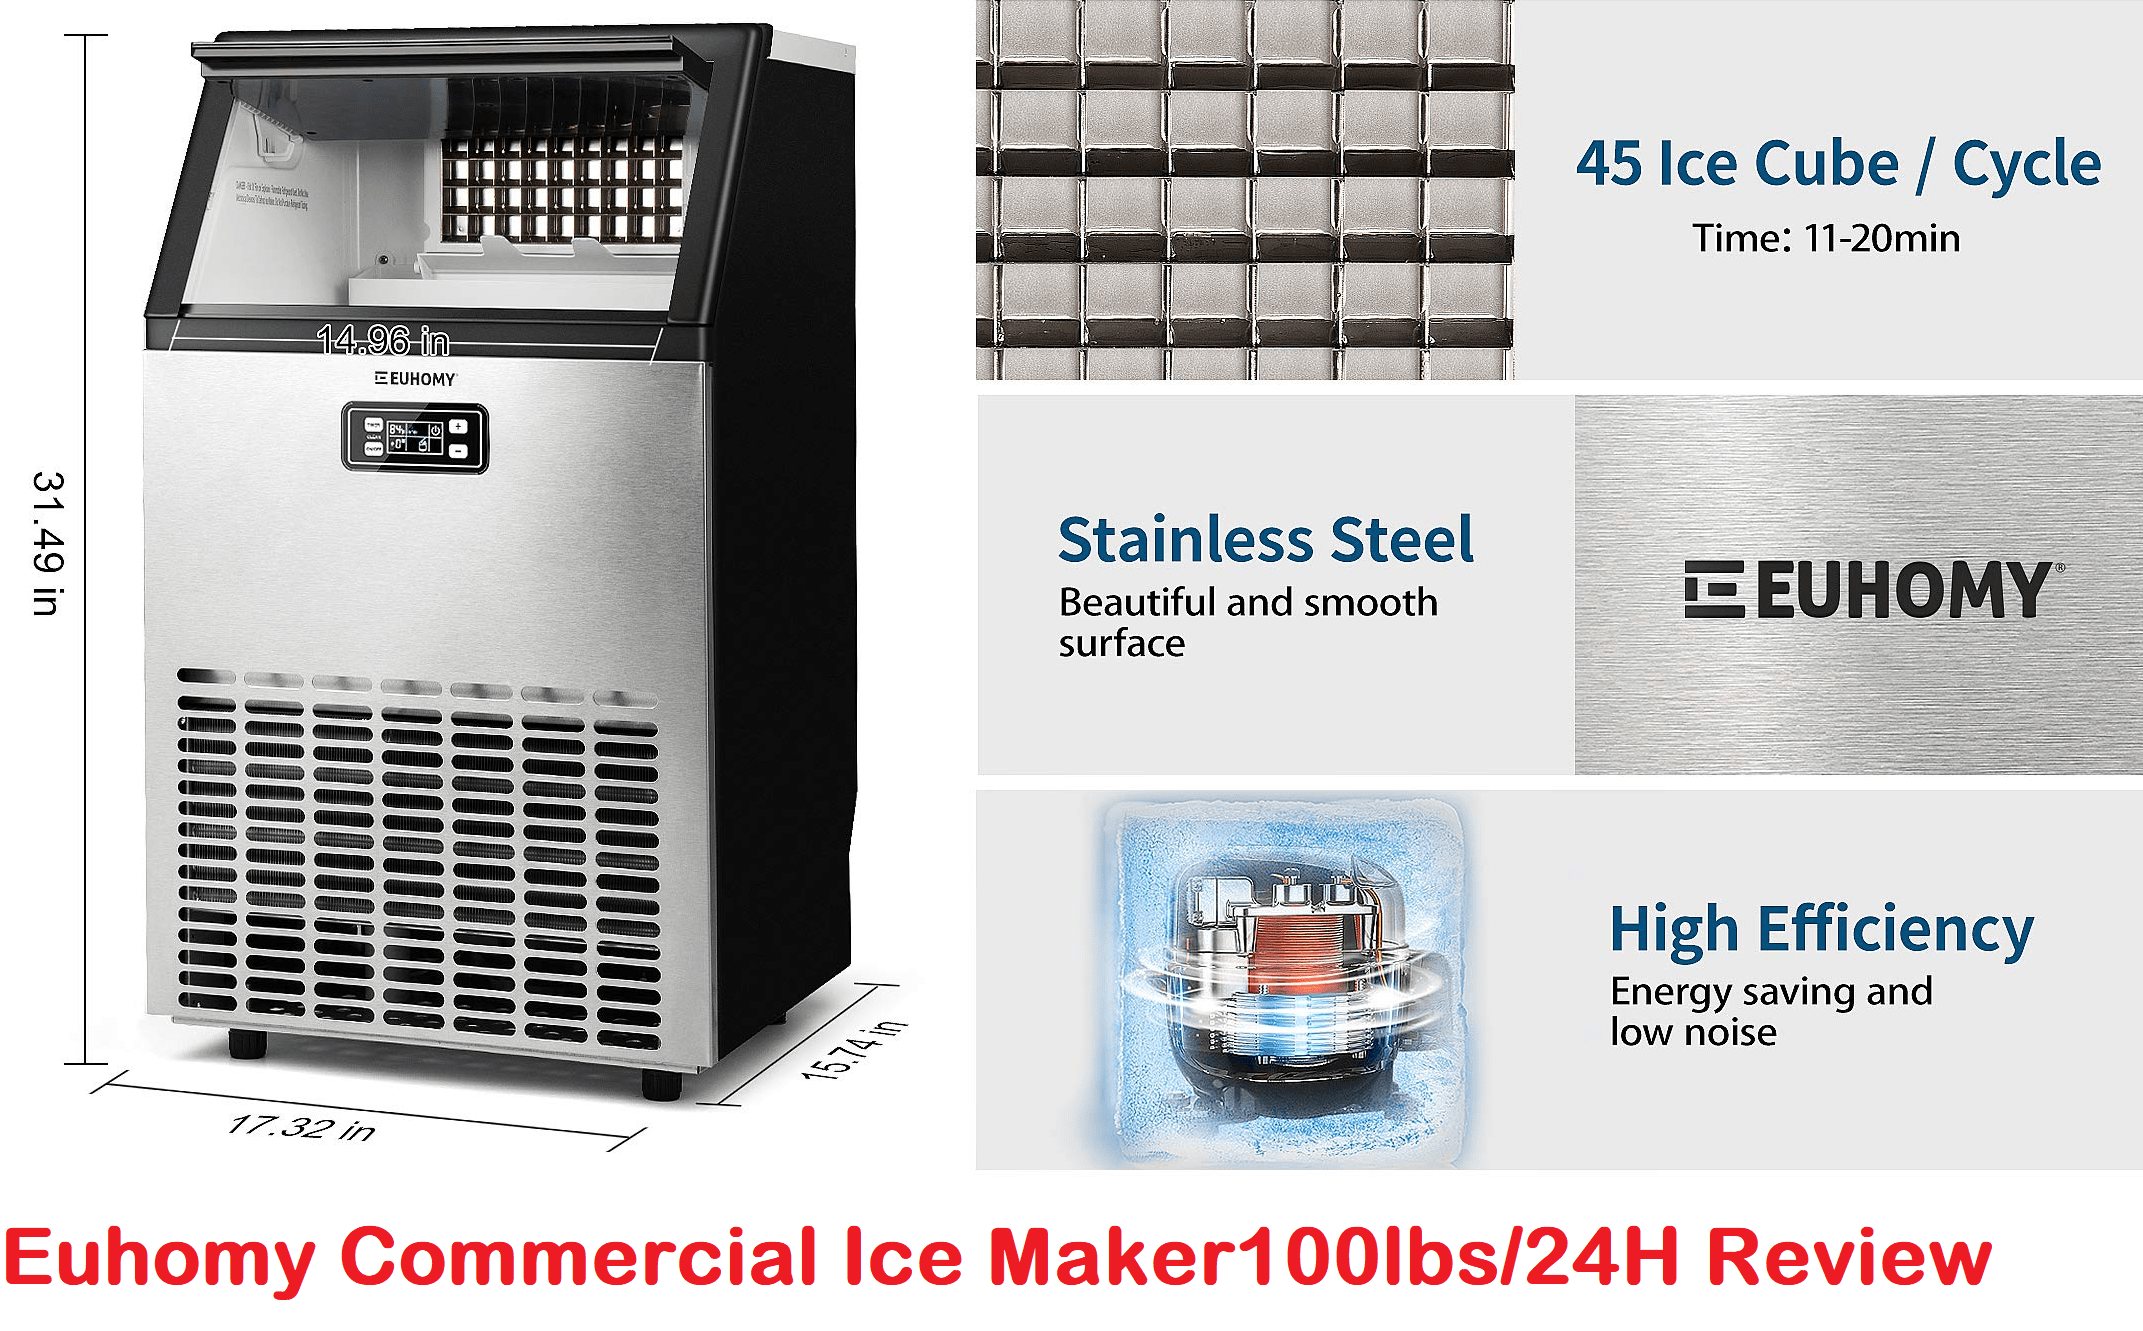 Euhomy Commercial Ice Maker Machine 100lbs/24H S: IM-02 Review